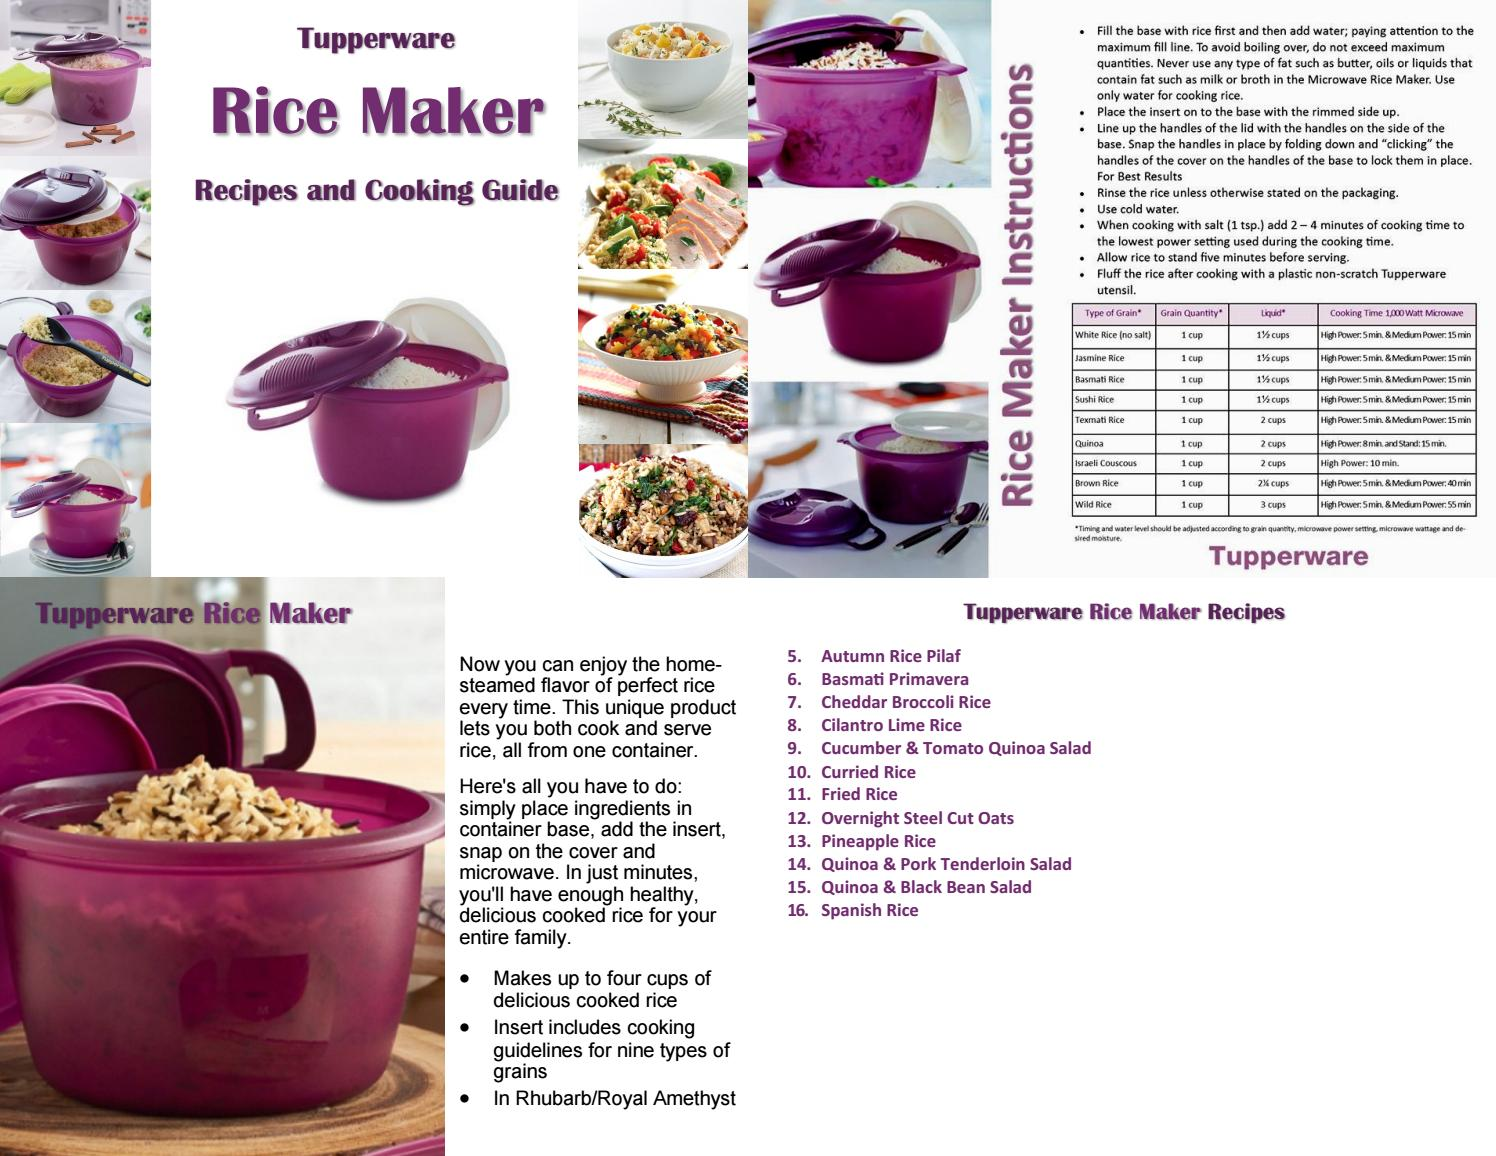 tupperware rice maker recipes and